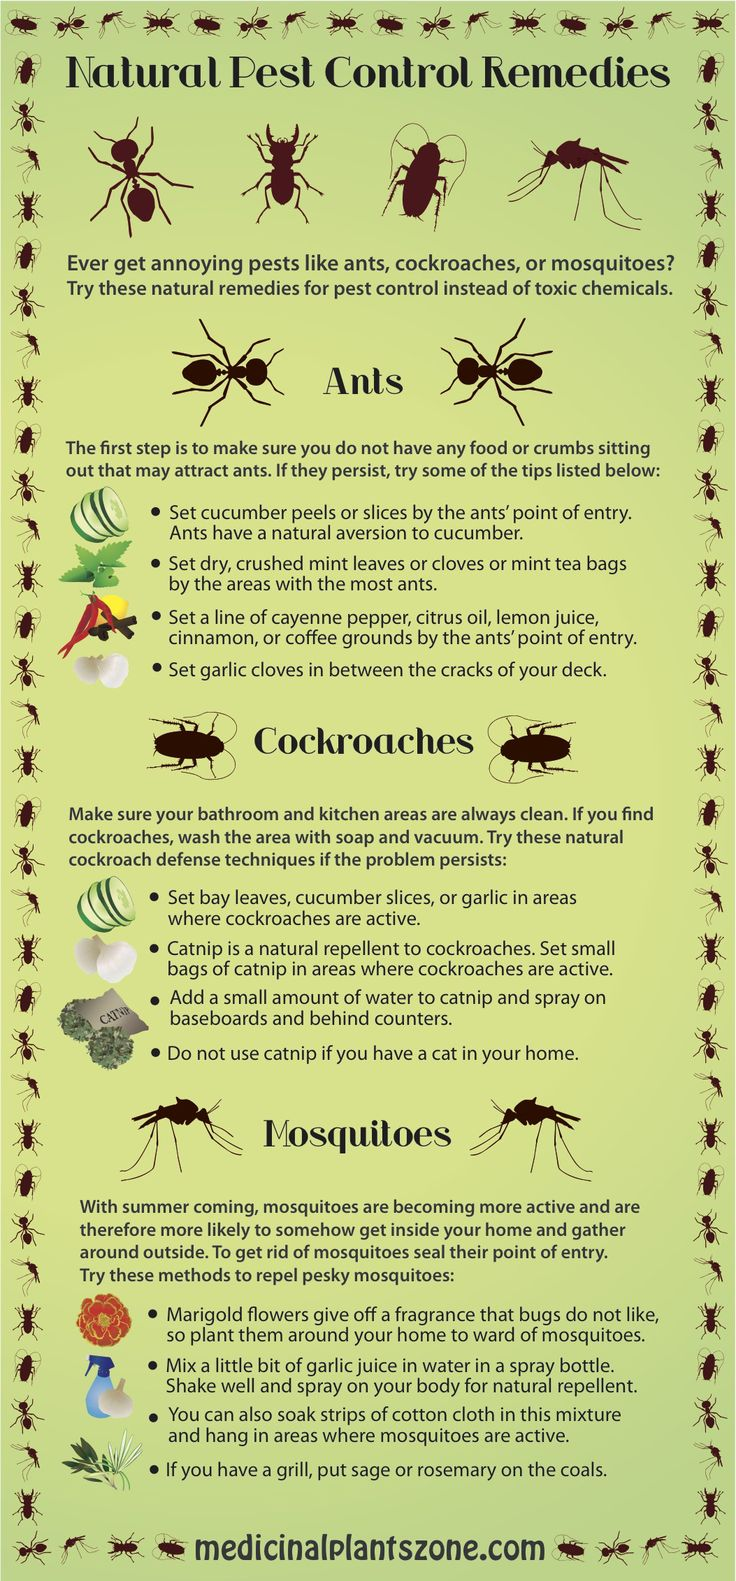 natural pest control remedies - Home And Garden Pest Control